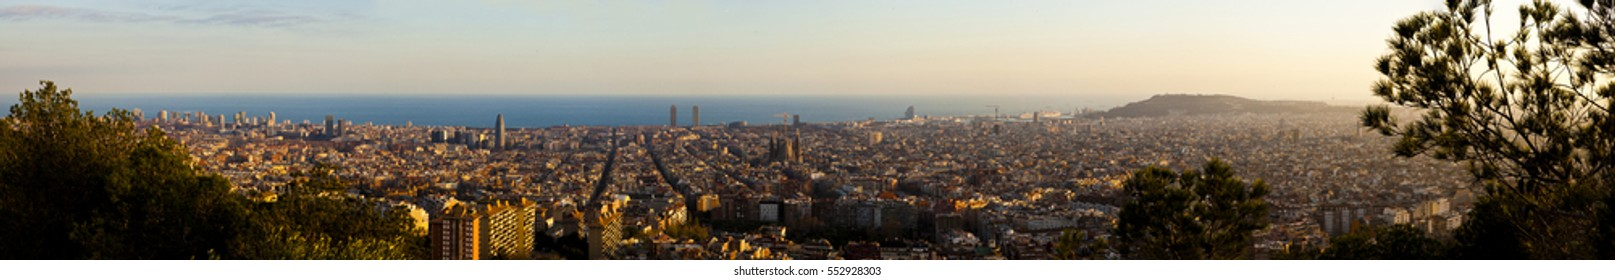 panoramic view of sunset from el carmelo bunker, horta, barcelona, catalonia, spain.